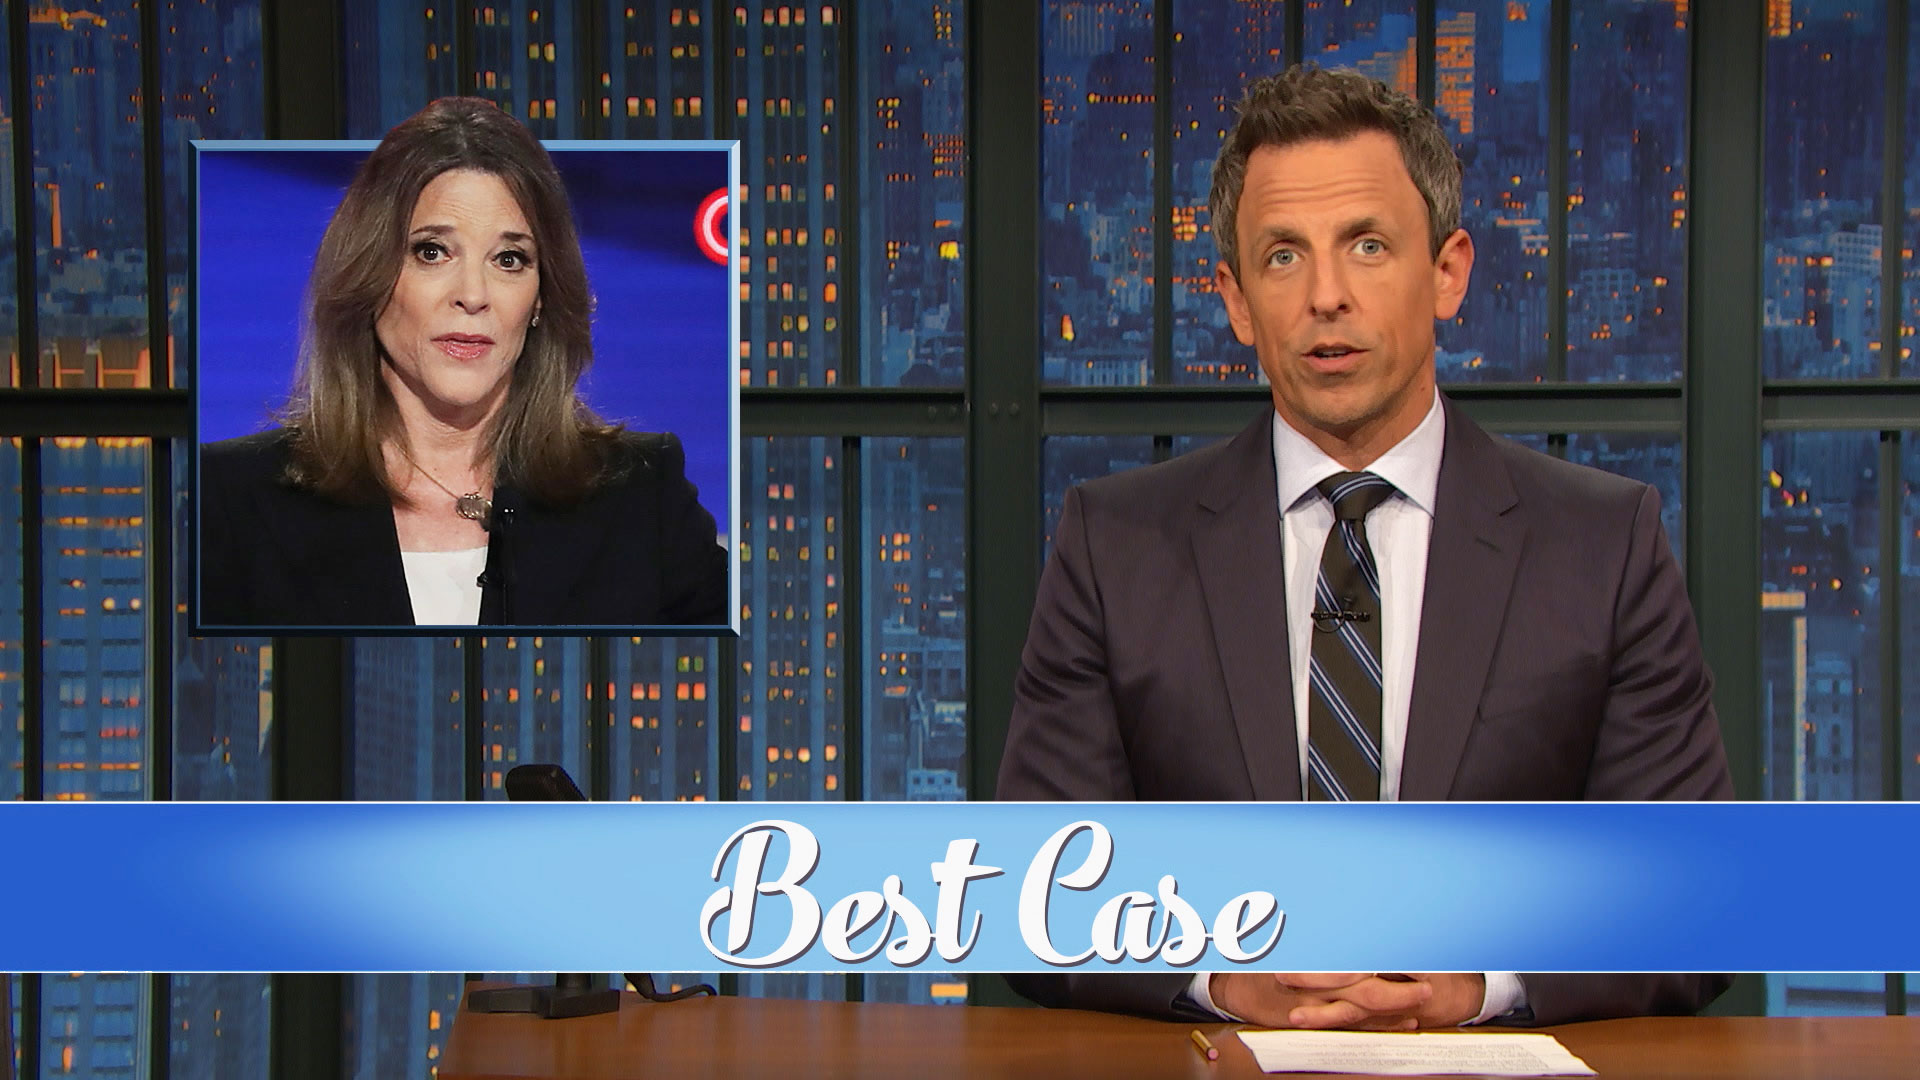 Best Cases 2020 Watch Late Night with Seth Meyers Highlight: Best Case/Worst Case